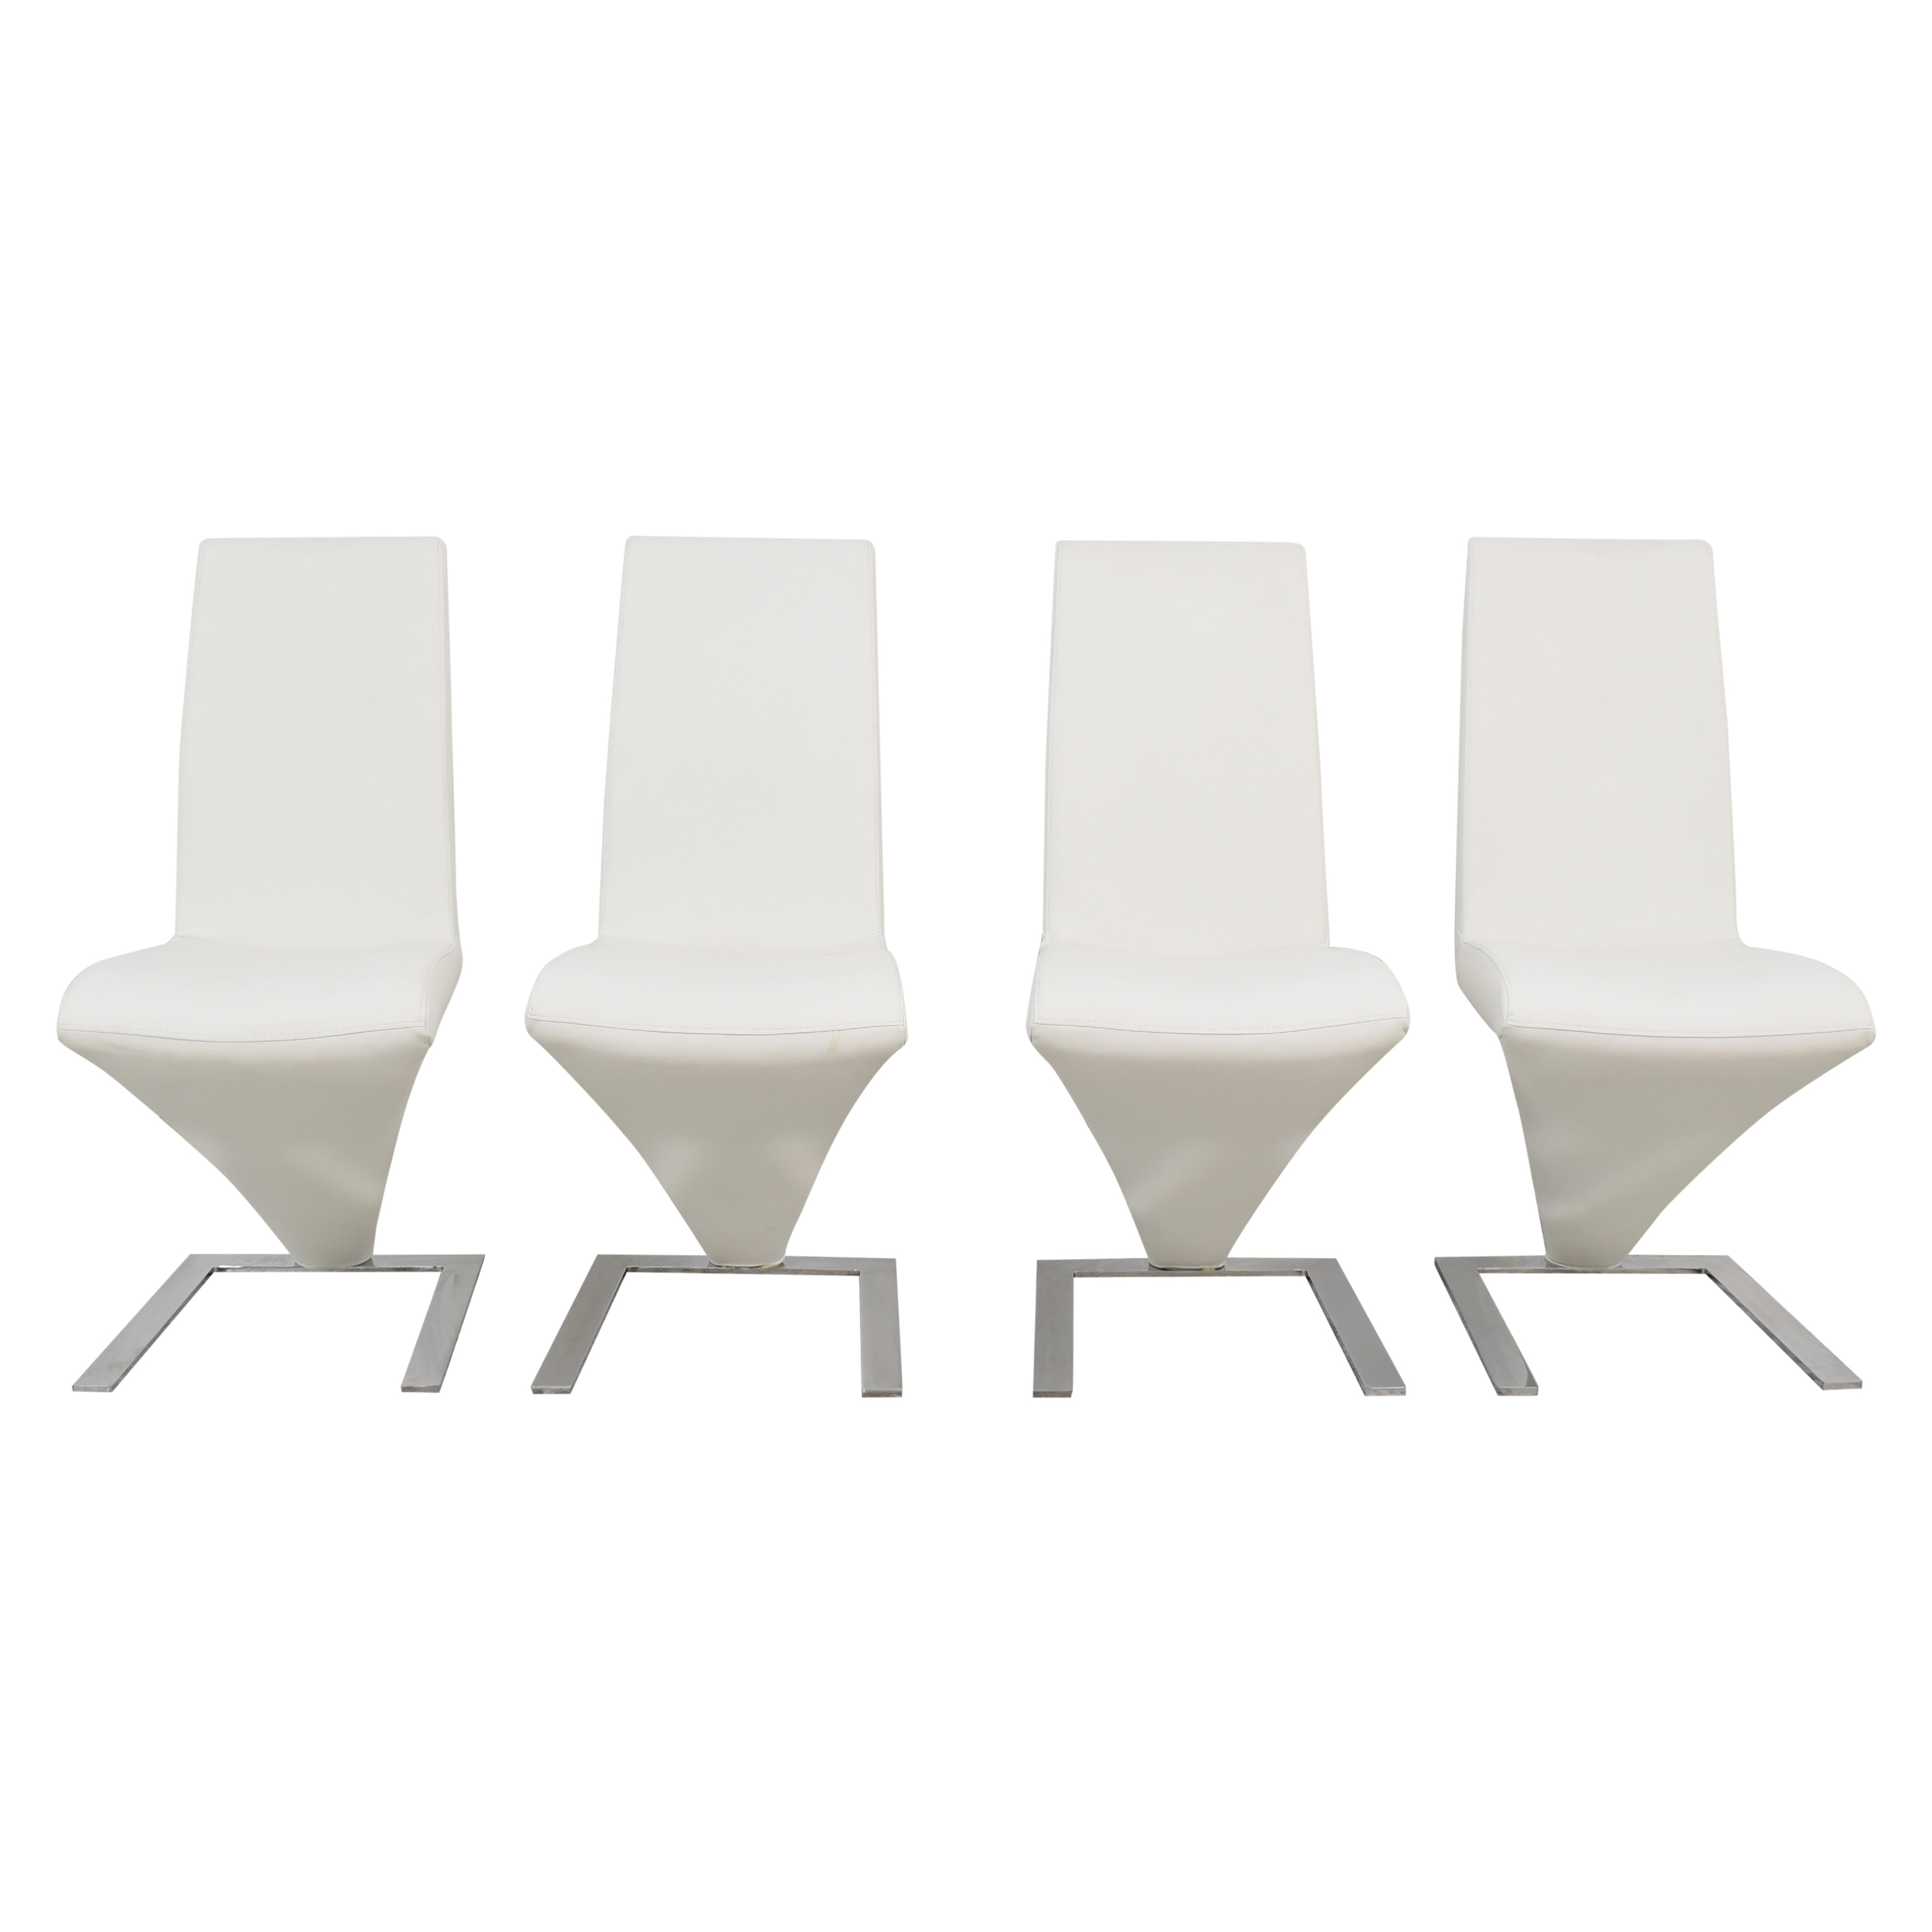 Zuo Modern Zuo Modern Herron Dining Chairs used